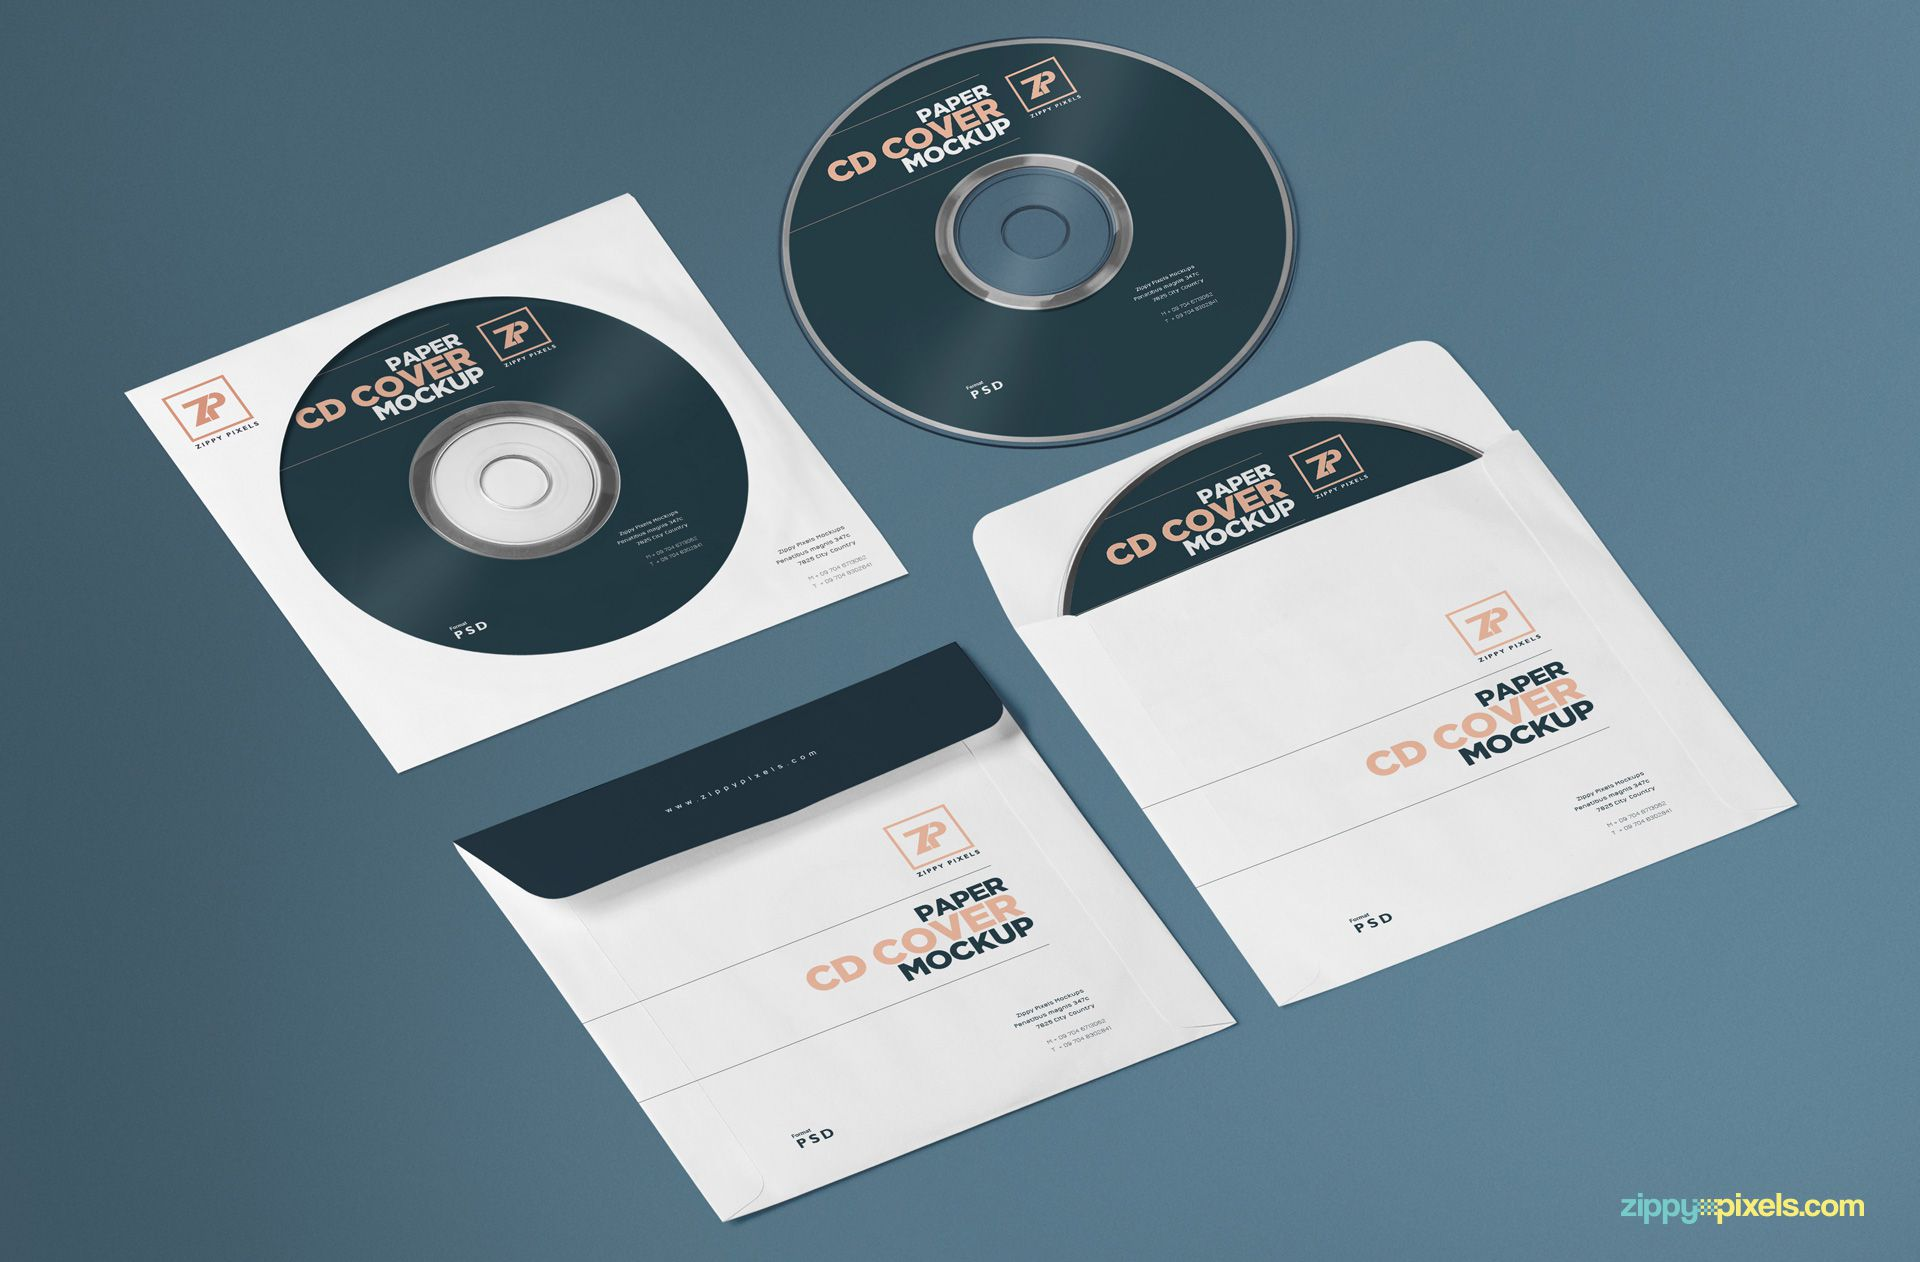 000 Striking Free Cd Cover Design Template Photoshop High Resolution  Label Psd DownloadFull